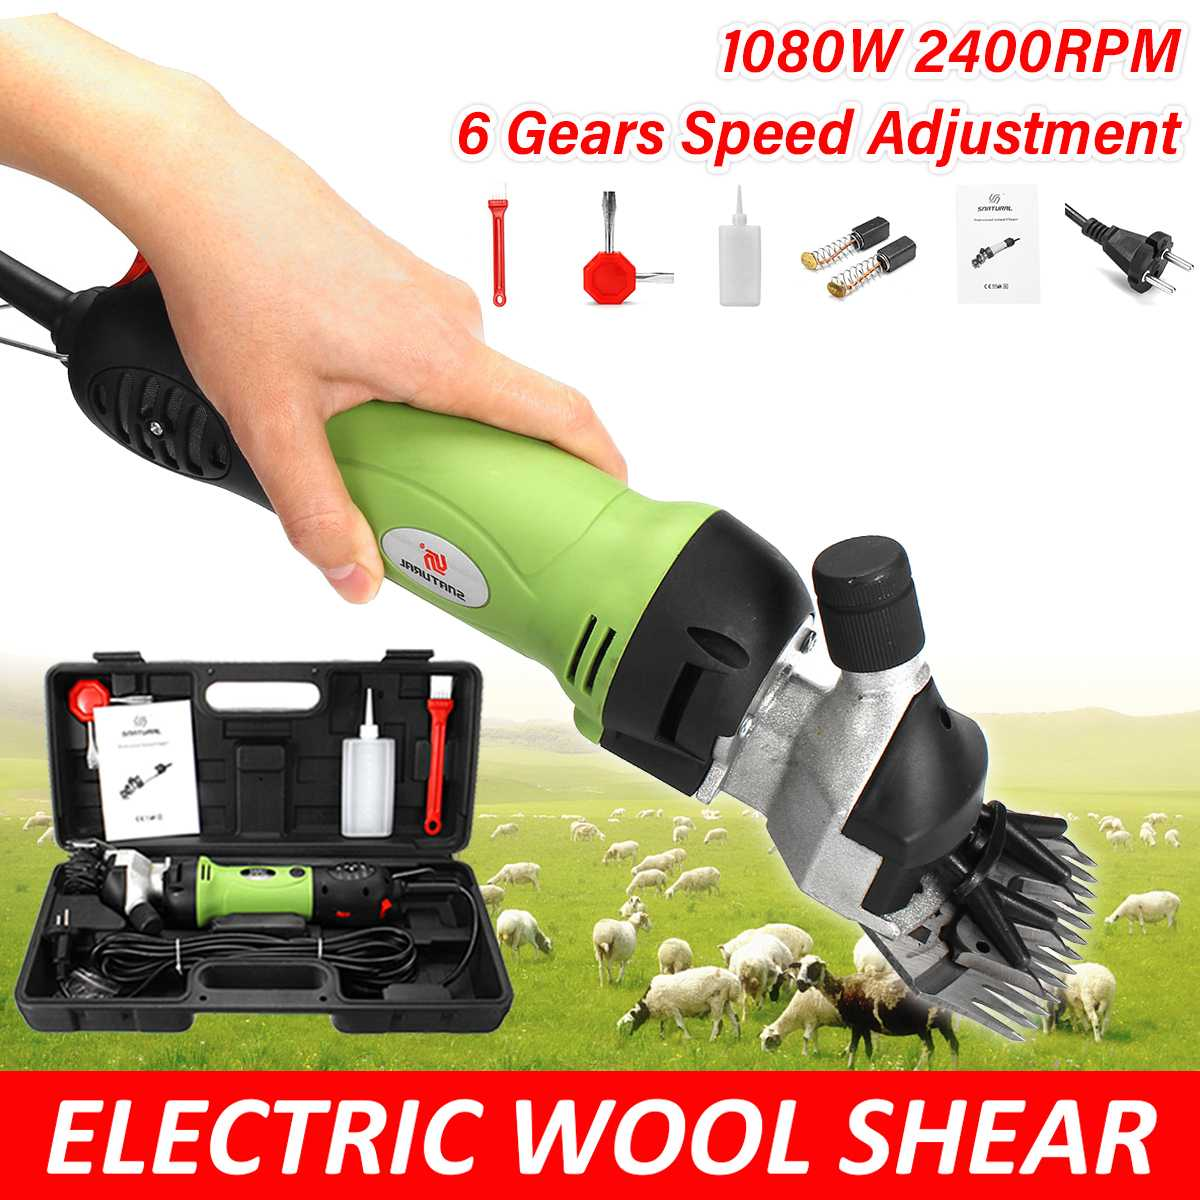 220V 1080W 6 Gears Speed Electric Sheep Goat Shearing Machine Clipper Farm Sheep Goat Shears Cutter Wool Scissor Cut Machine